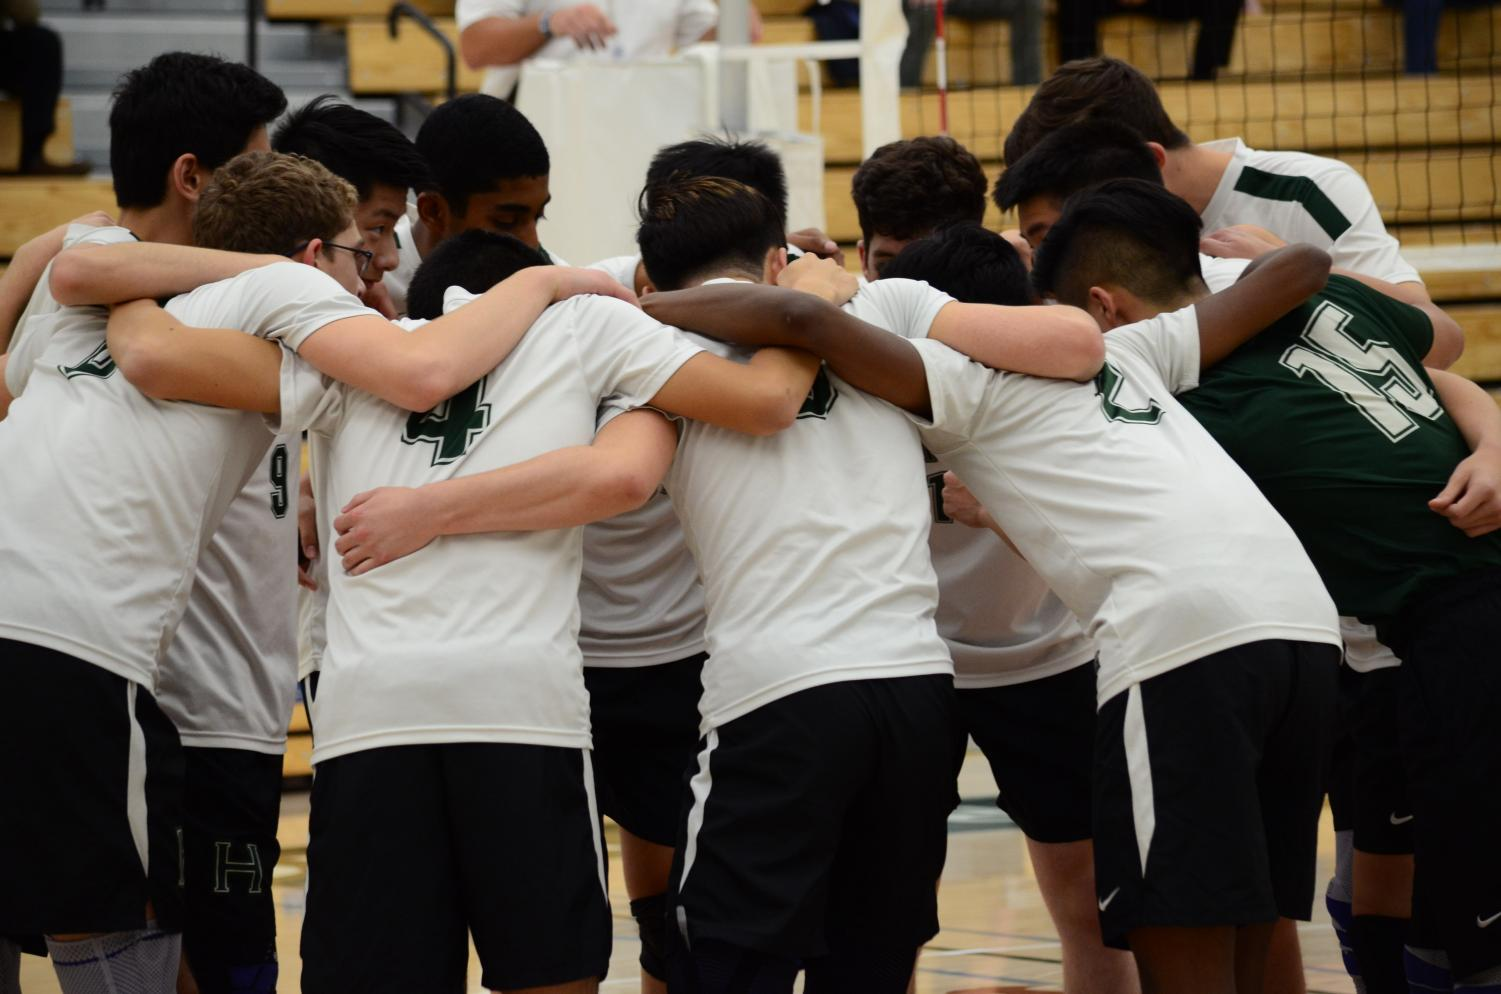 The boys team huddles up ahead of their NorCal quarterfinal game against Carmel, which they won 25-20, 26-24, 25-13.